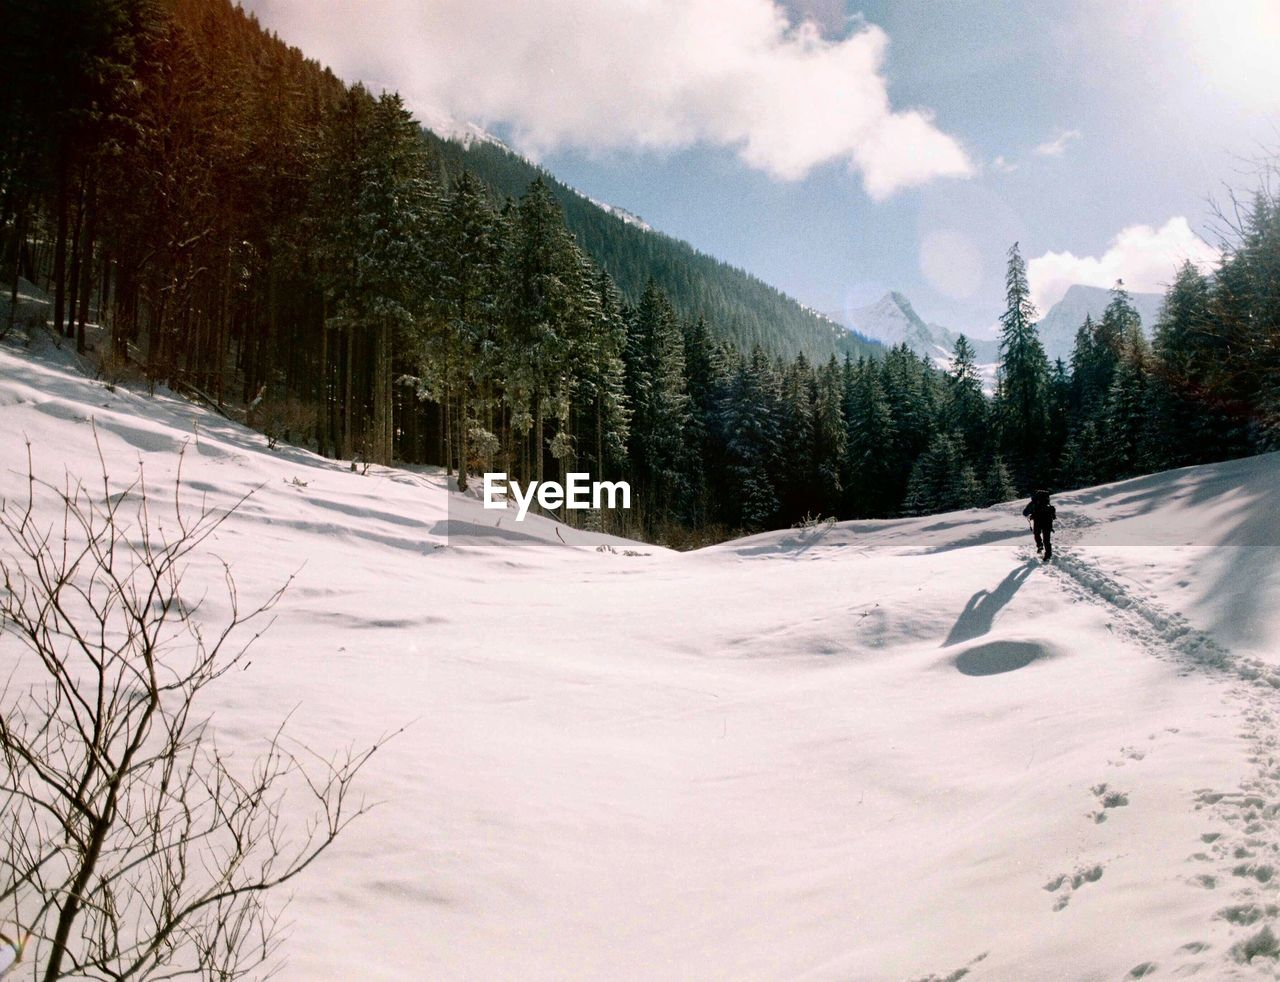 snow, cold temperature, winter, tree, plant, sky, beauty in nature, mountain, nature, scenics - nature, land, environment, day, winter sport, cloud - sky, non-urban scene, leisure activity, covering, landscape, outdoors, snowcapped mountain